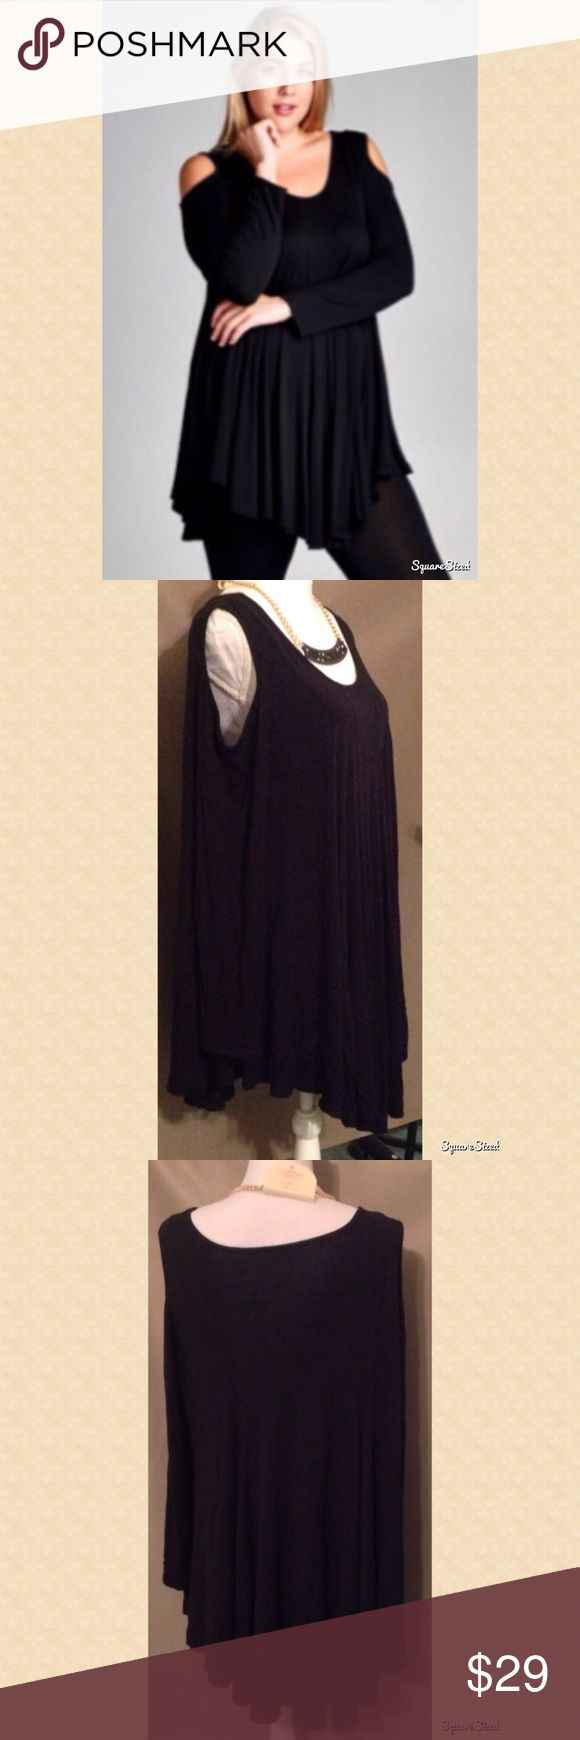 Sexy Black Cold Shoulder Top Fall in love with this cold shoulder top! Size: 2X ; 95% Rayon and 5% Spandex. Tops